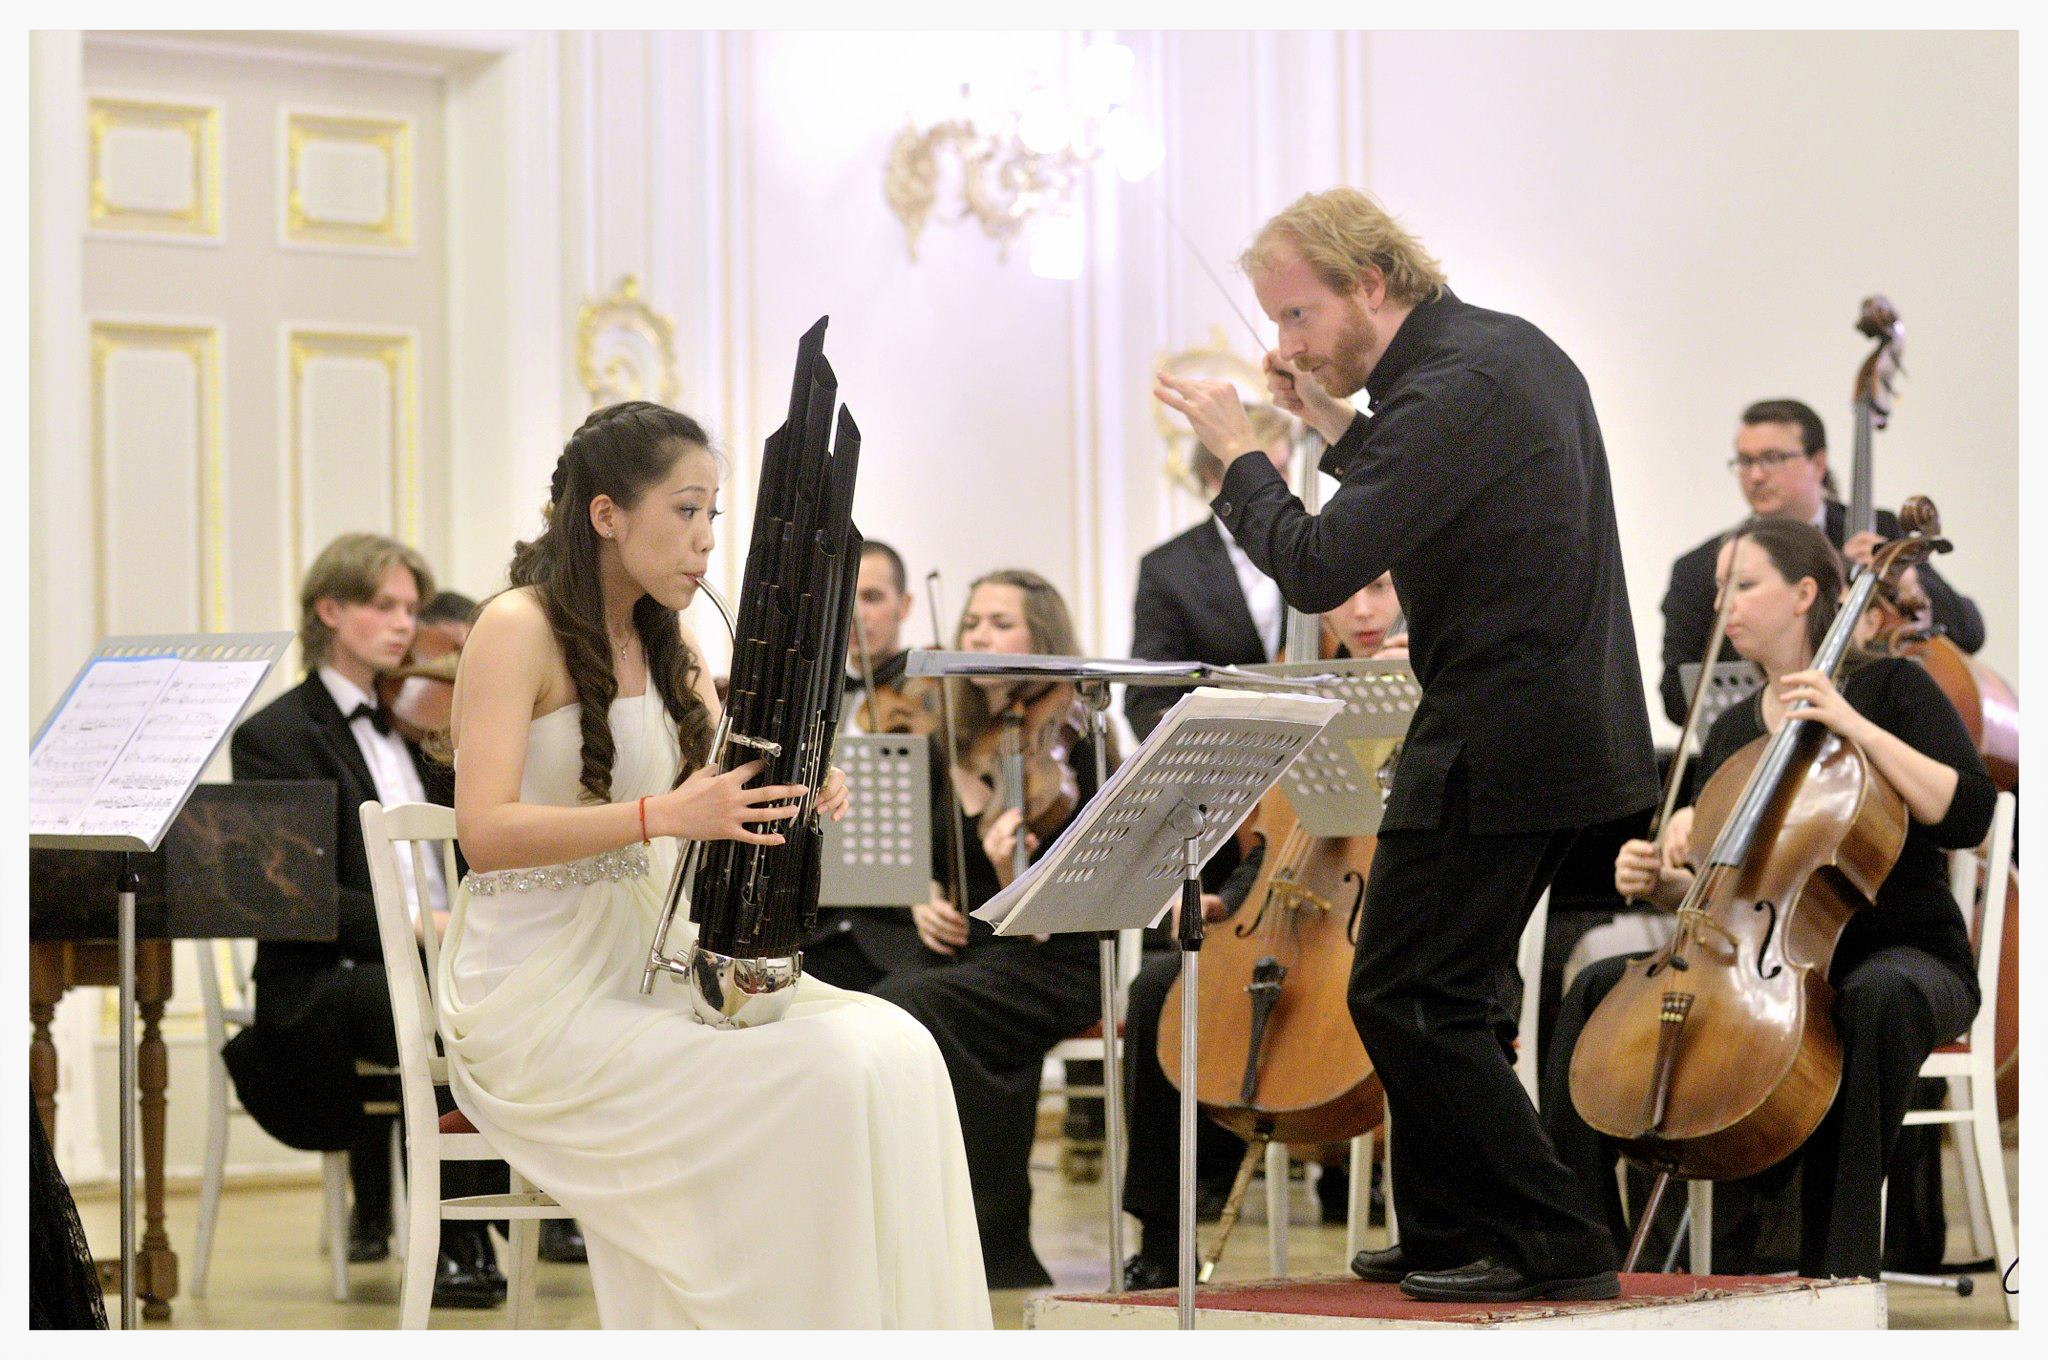 - St. Petersburg's preeminent orchestral ensemble for contemporary performance, progressive programming, and outstanding emerging talent.